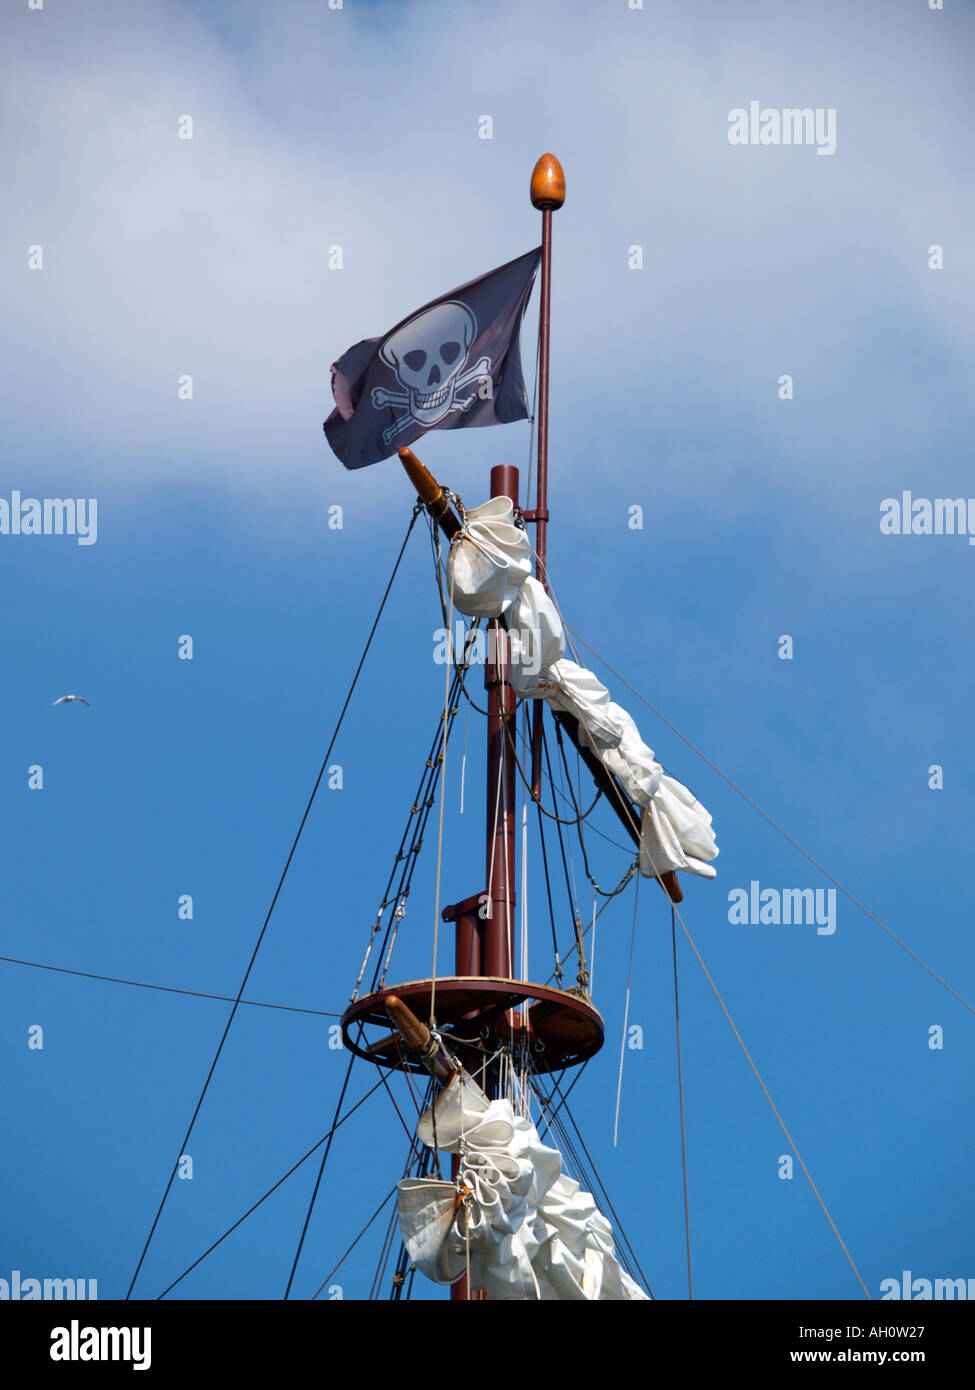 Skull and bones jolly roger pirates flag waving in the mast of a tall ship - Stock Image